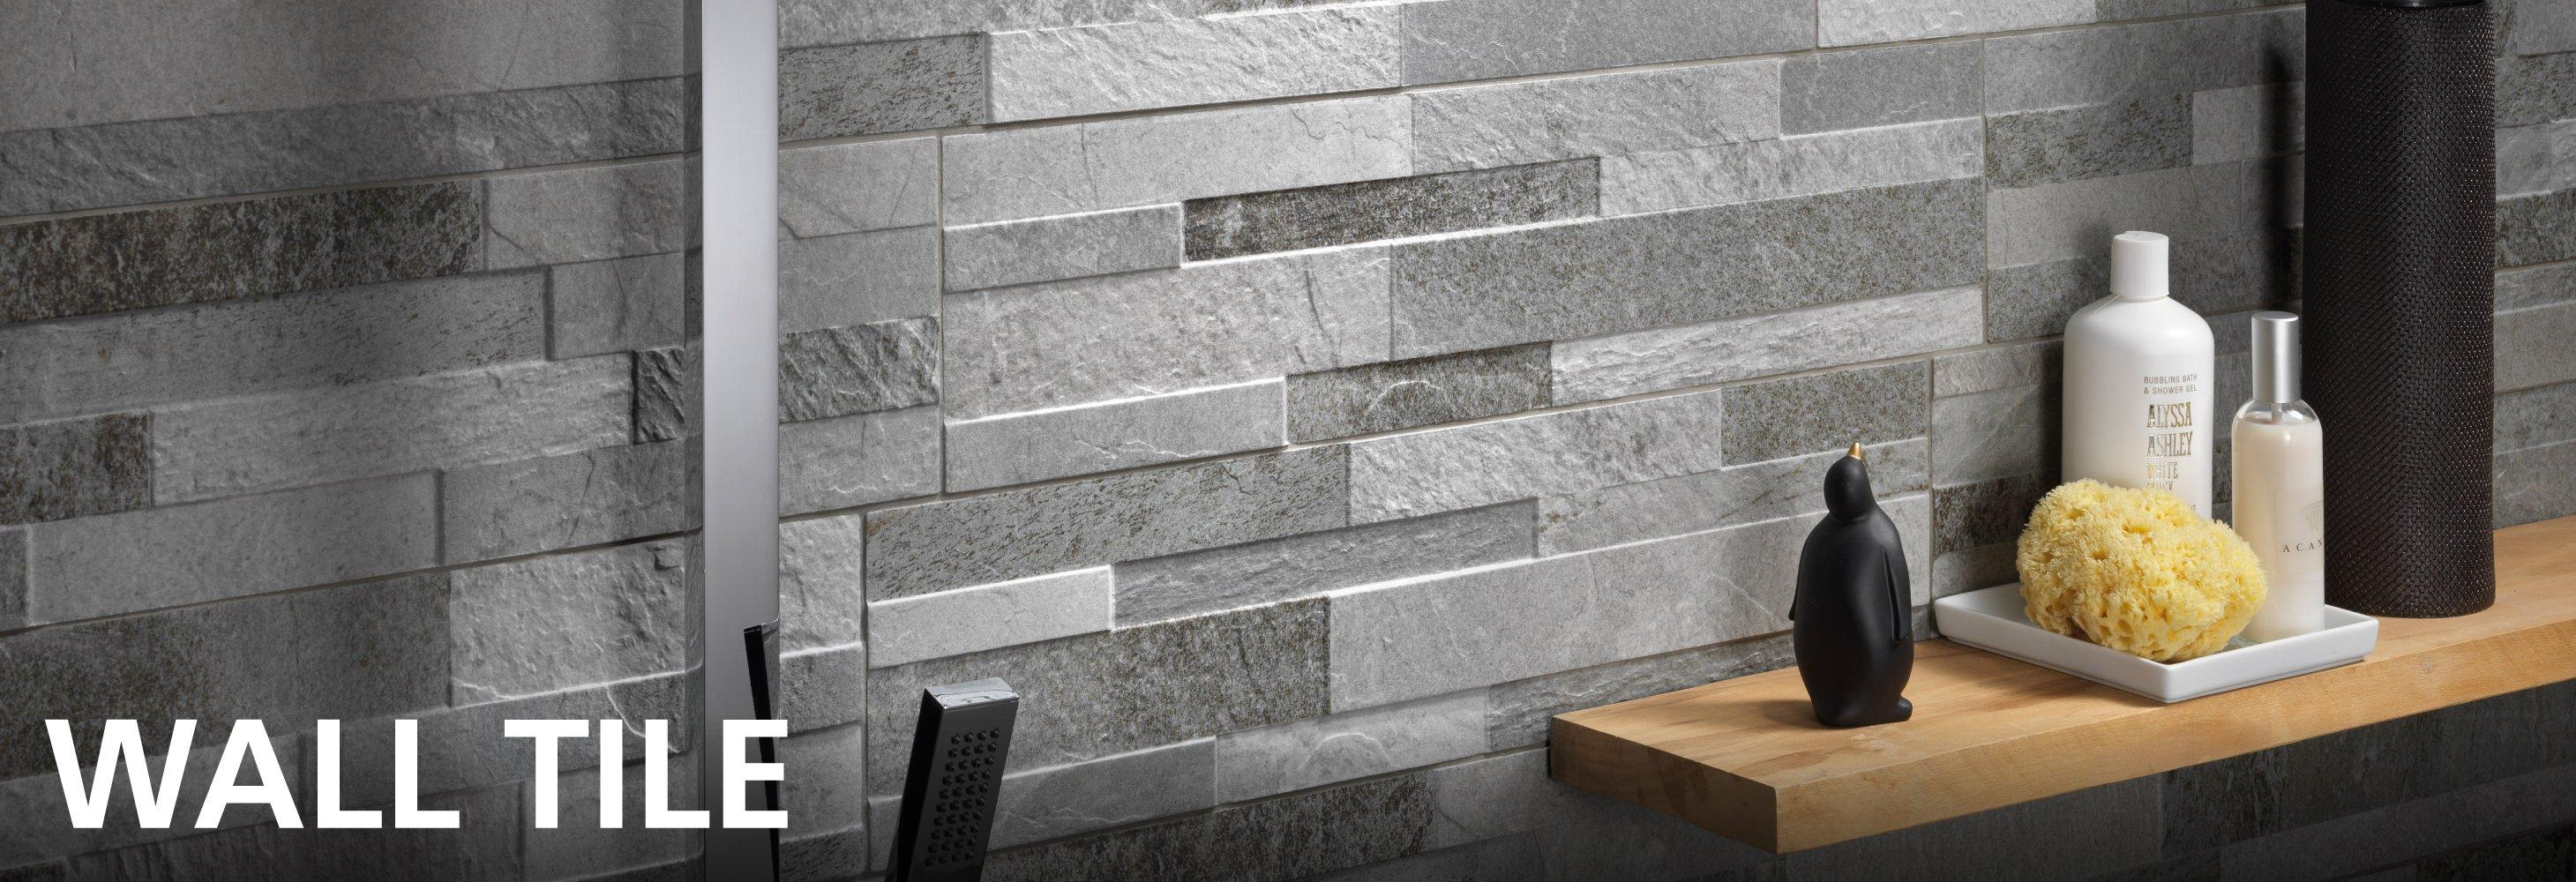 Lovely Wall Tile